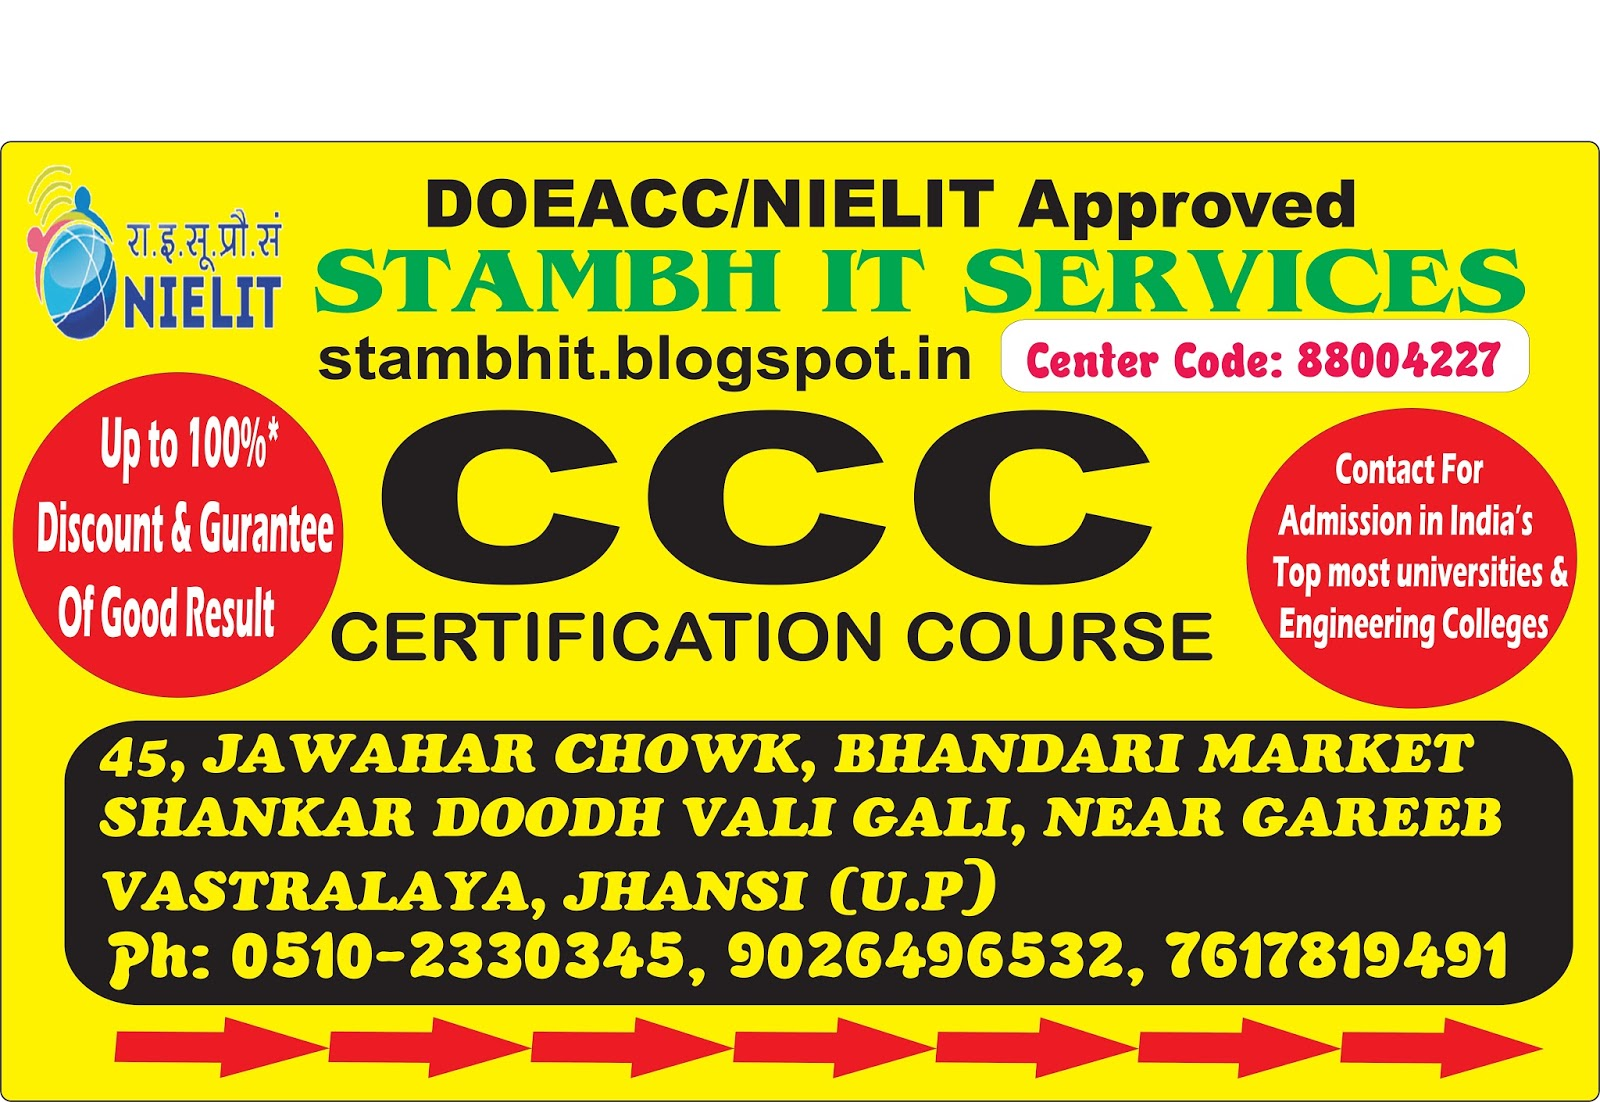 Stambh it services ccc certification course nielitdoeacc approved monday 1 august 2016 xflitez Image collections